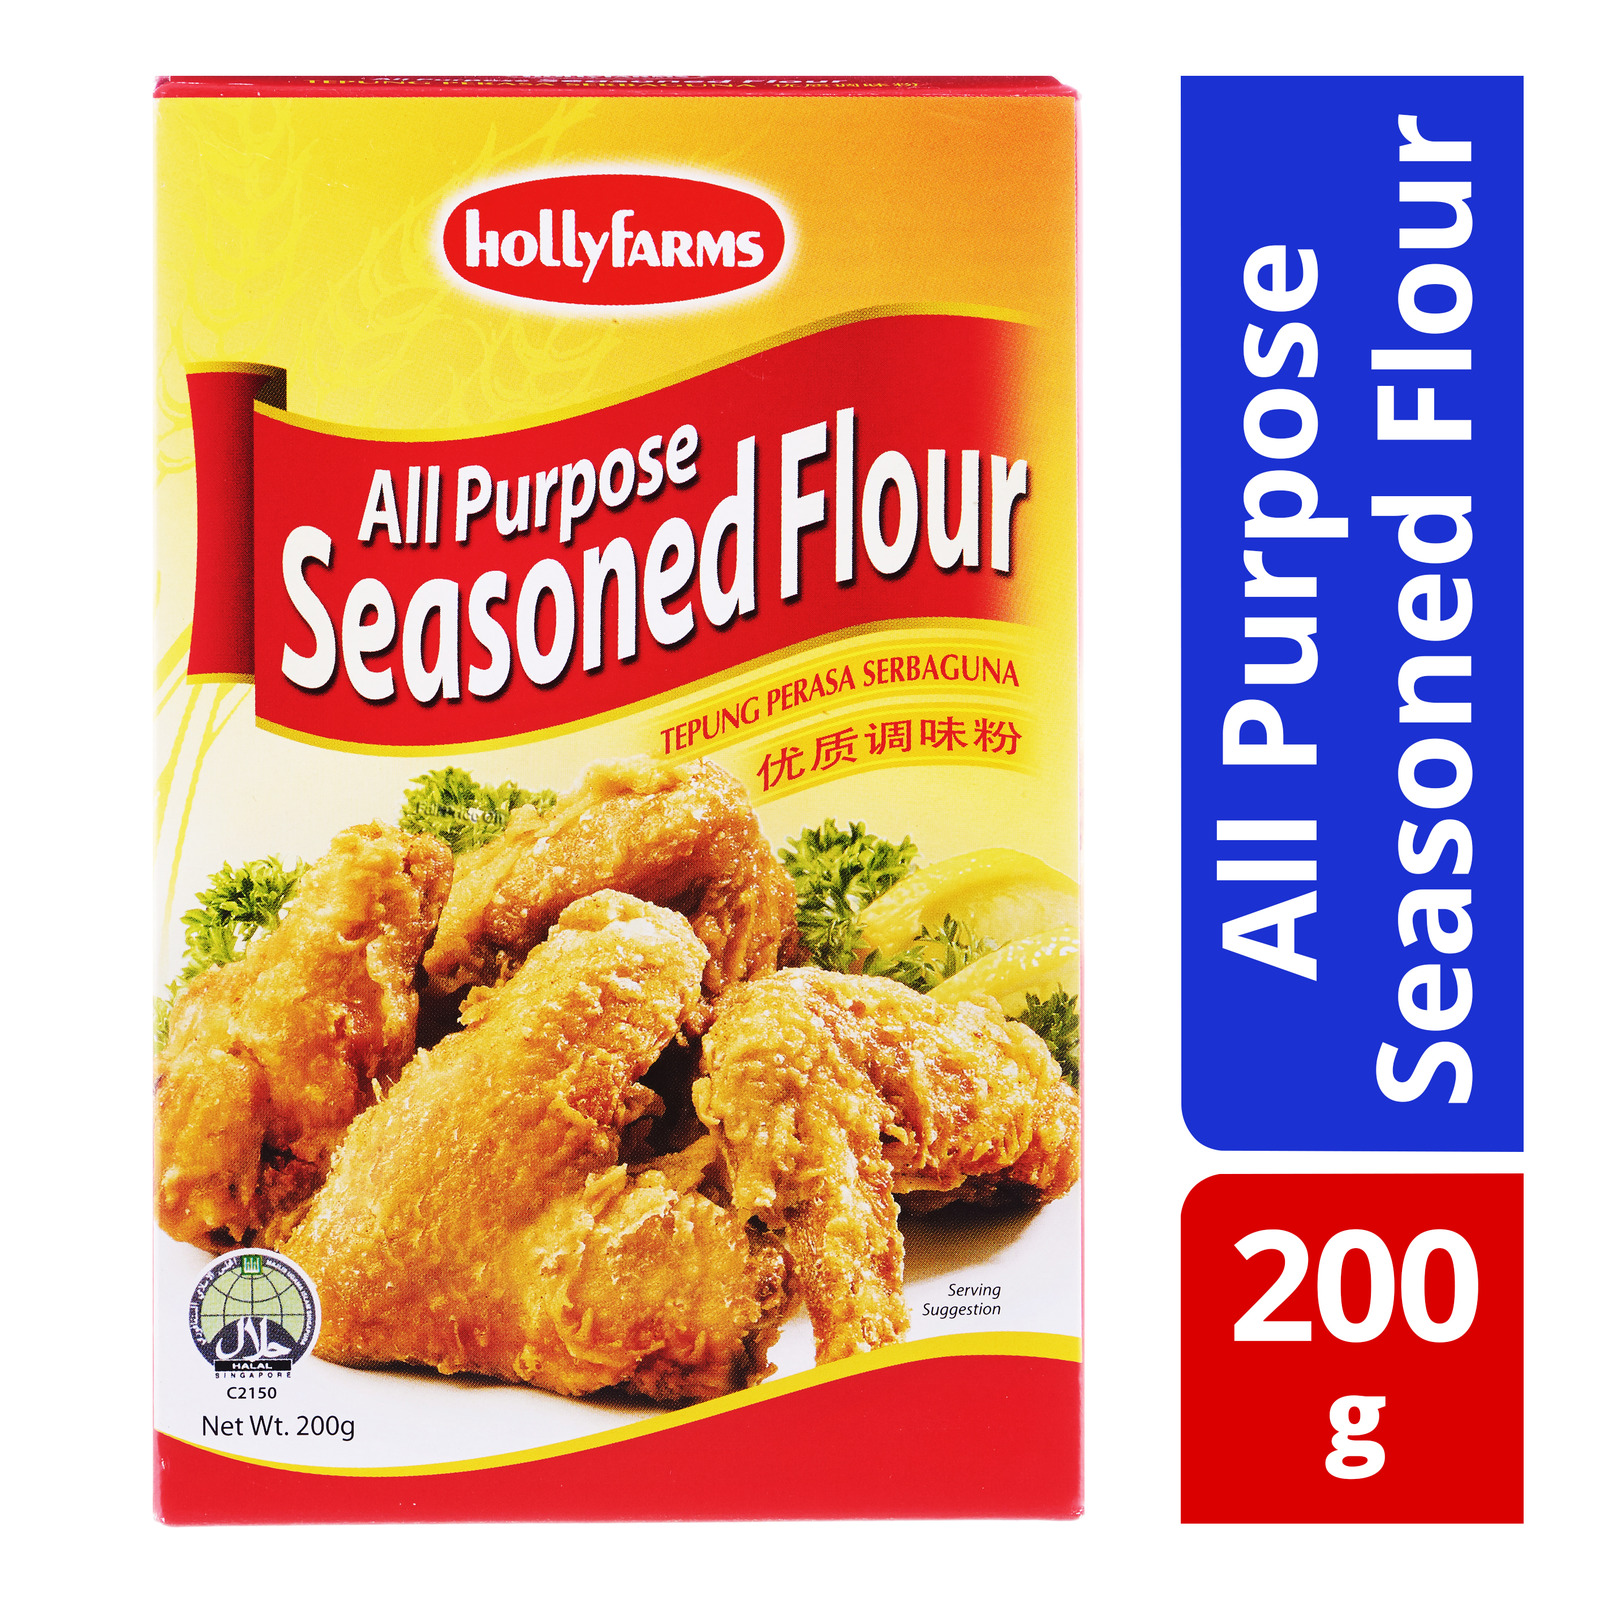 HOLLYFARMS All Purpose Seasoned Flour 200g